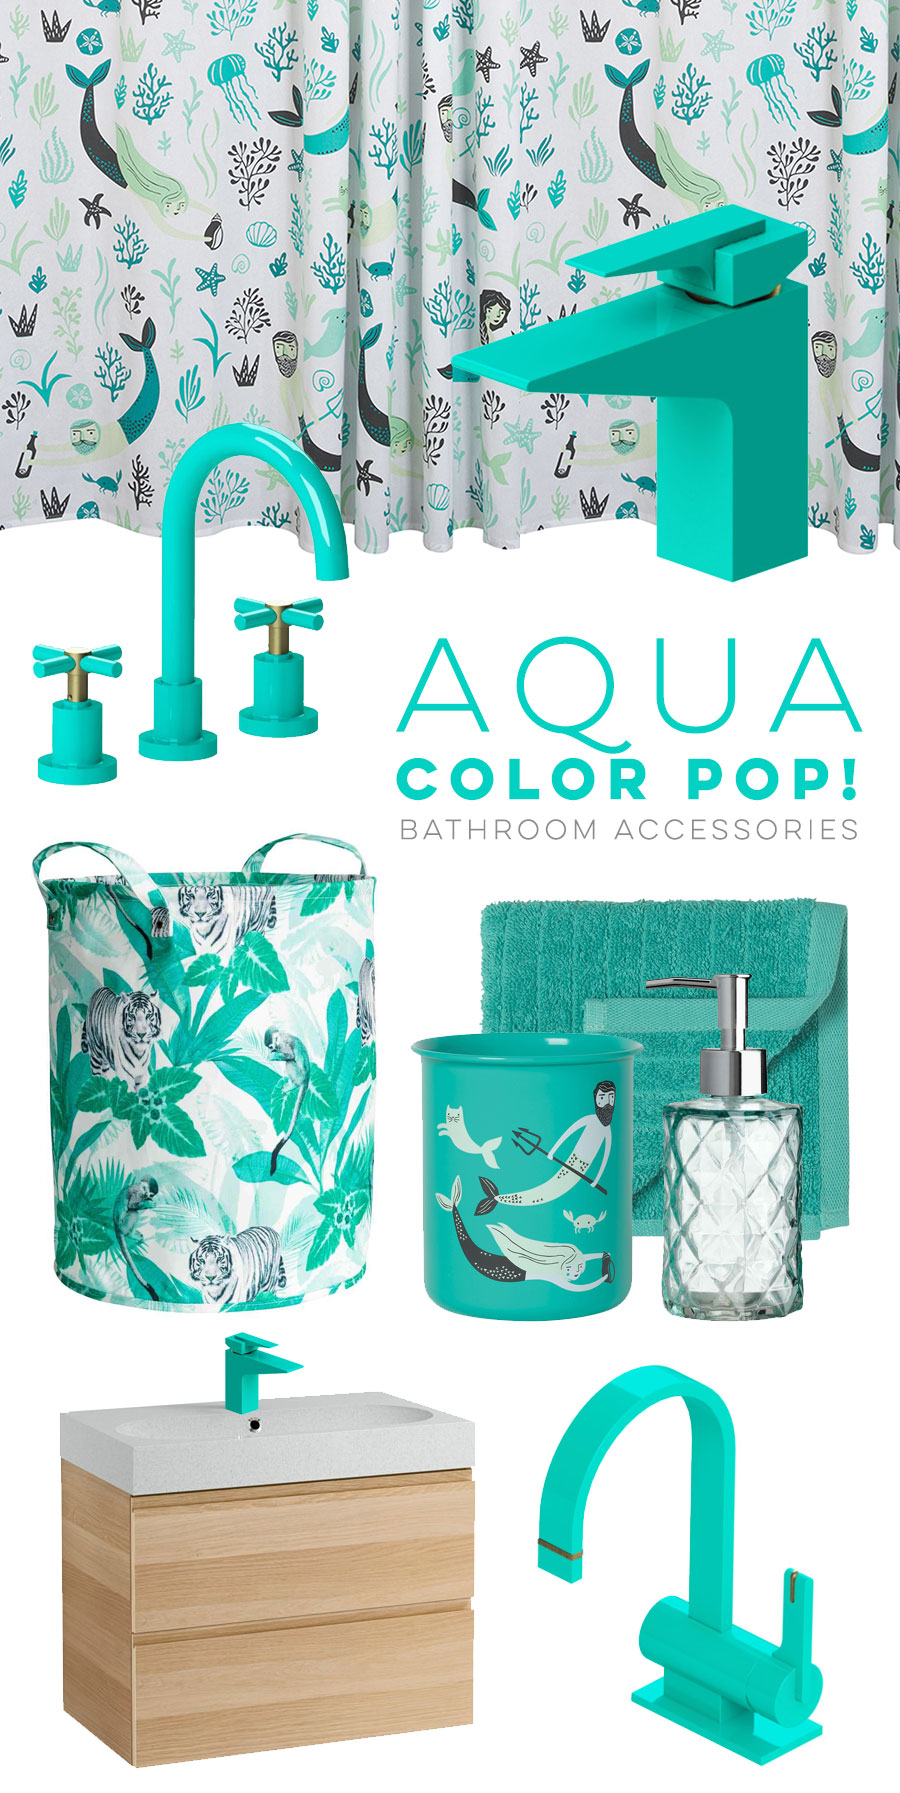 Aqua bathroom accessories visualheart creative studio for Aqua colored bathroom accessories